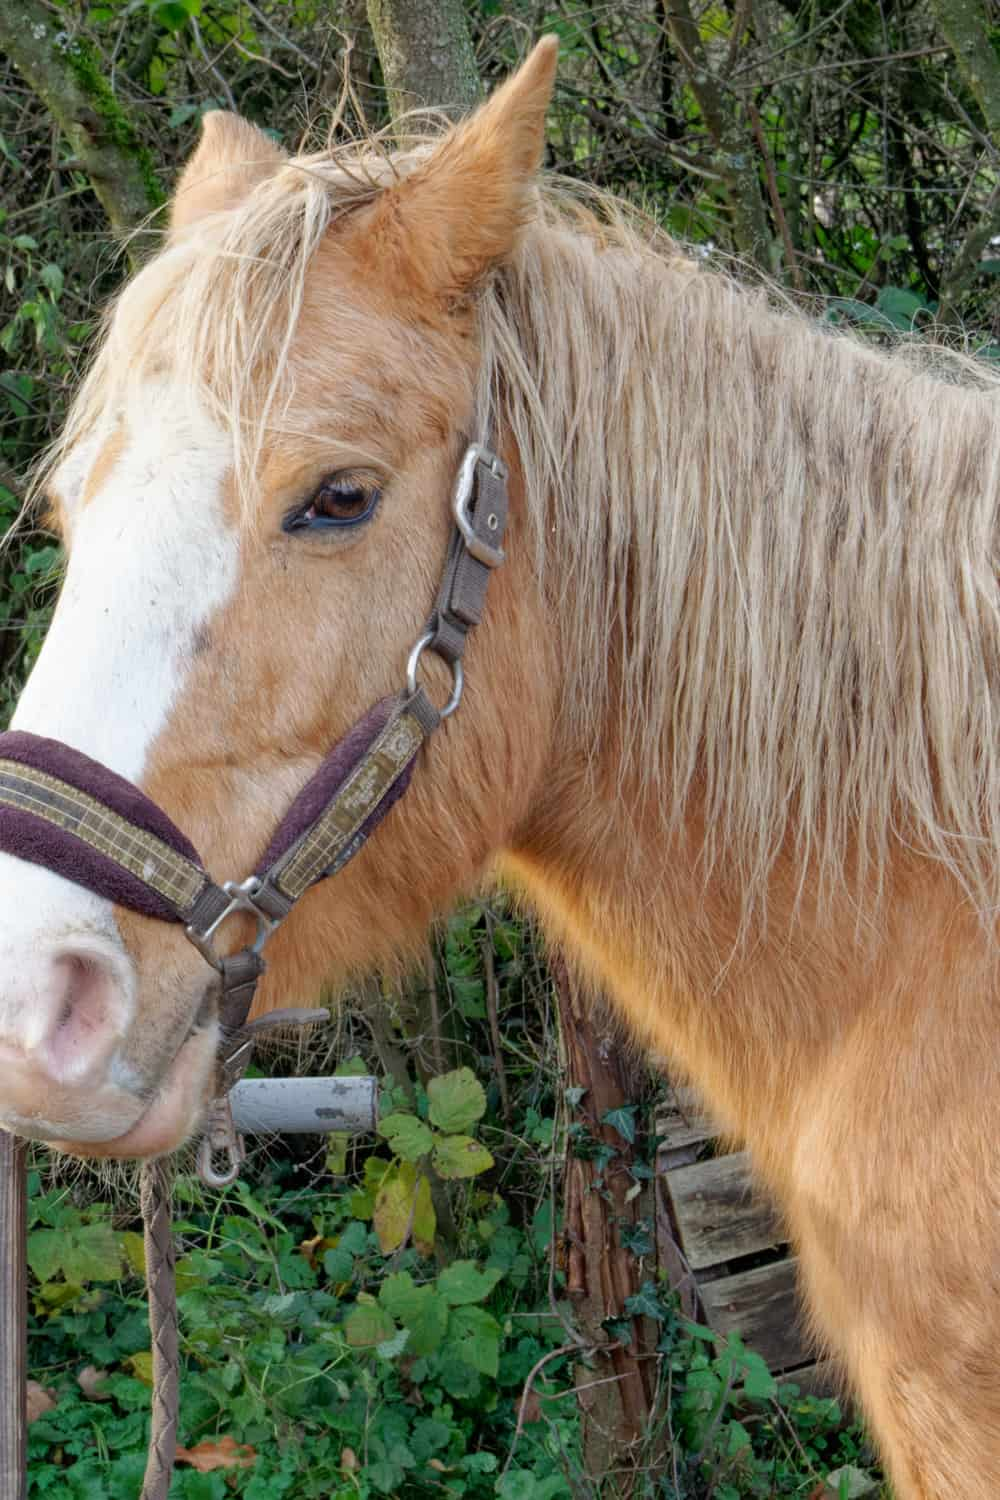 Manes are a good indicator of horse health